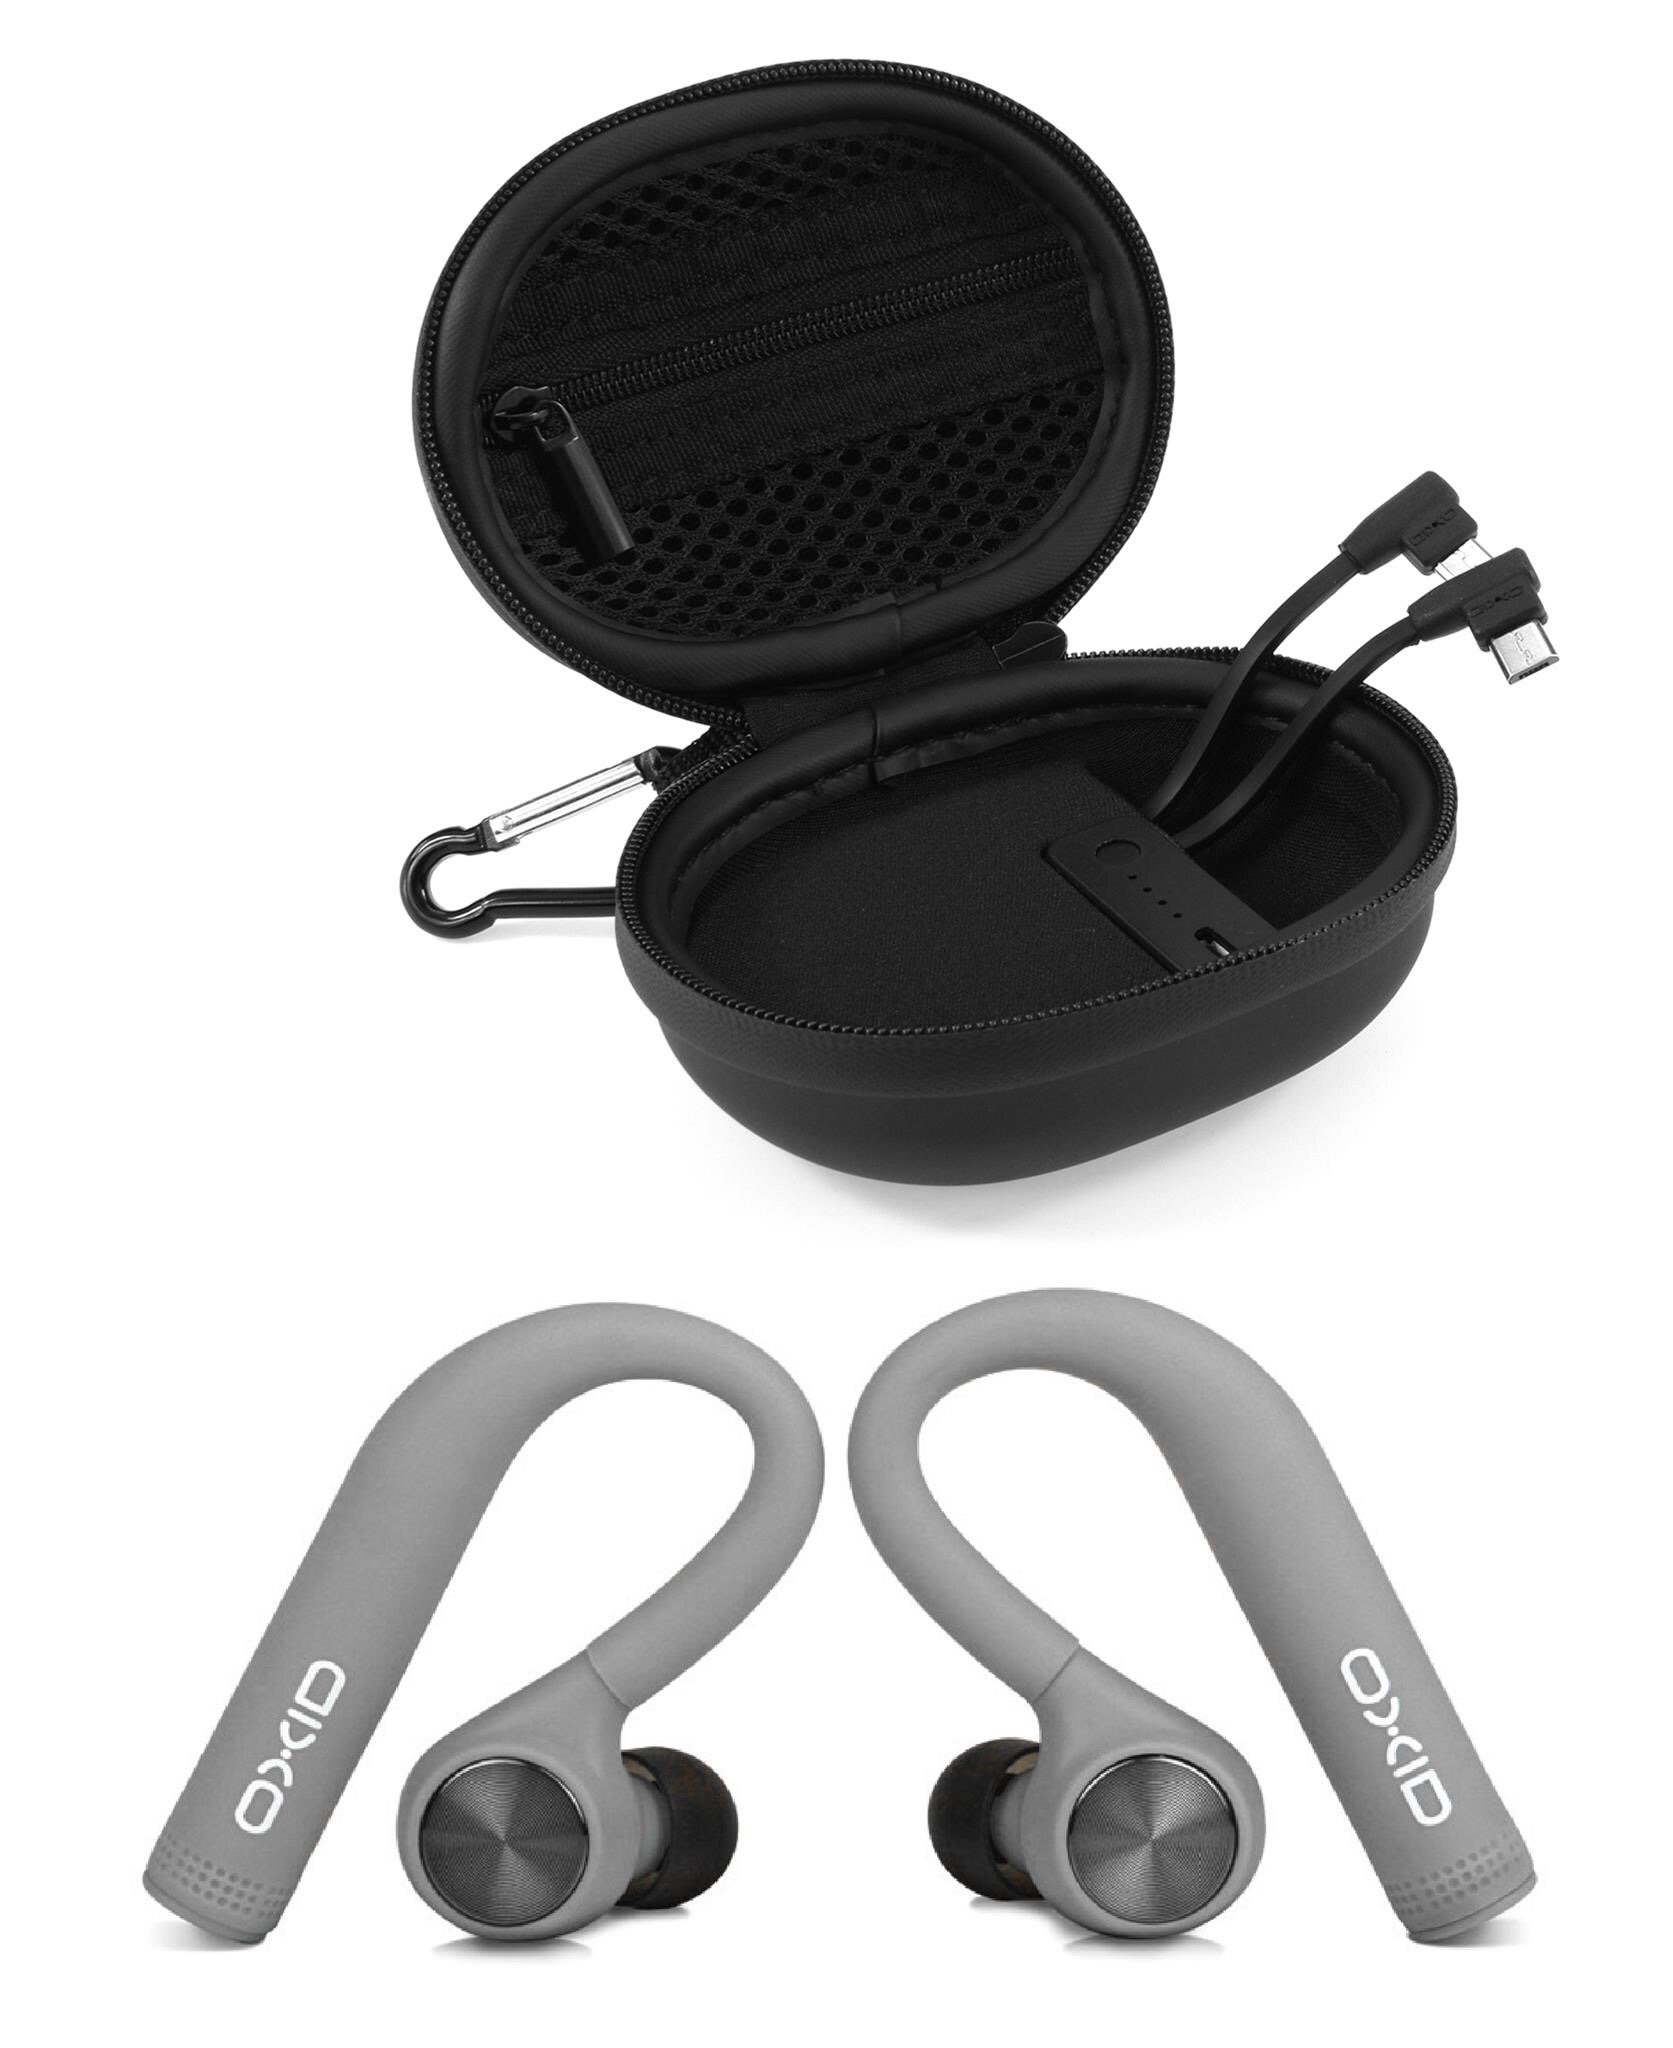 OXID AudioBuds True Wireless Bluetooth Headphones with Charging and Protective Case - 4.5 Hours Playtime, Touch Controls, HD Sound Quality (Grey) (Not Compatible: SAMSUNG Phones with Android 8.0)